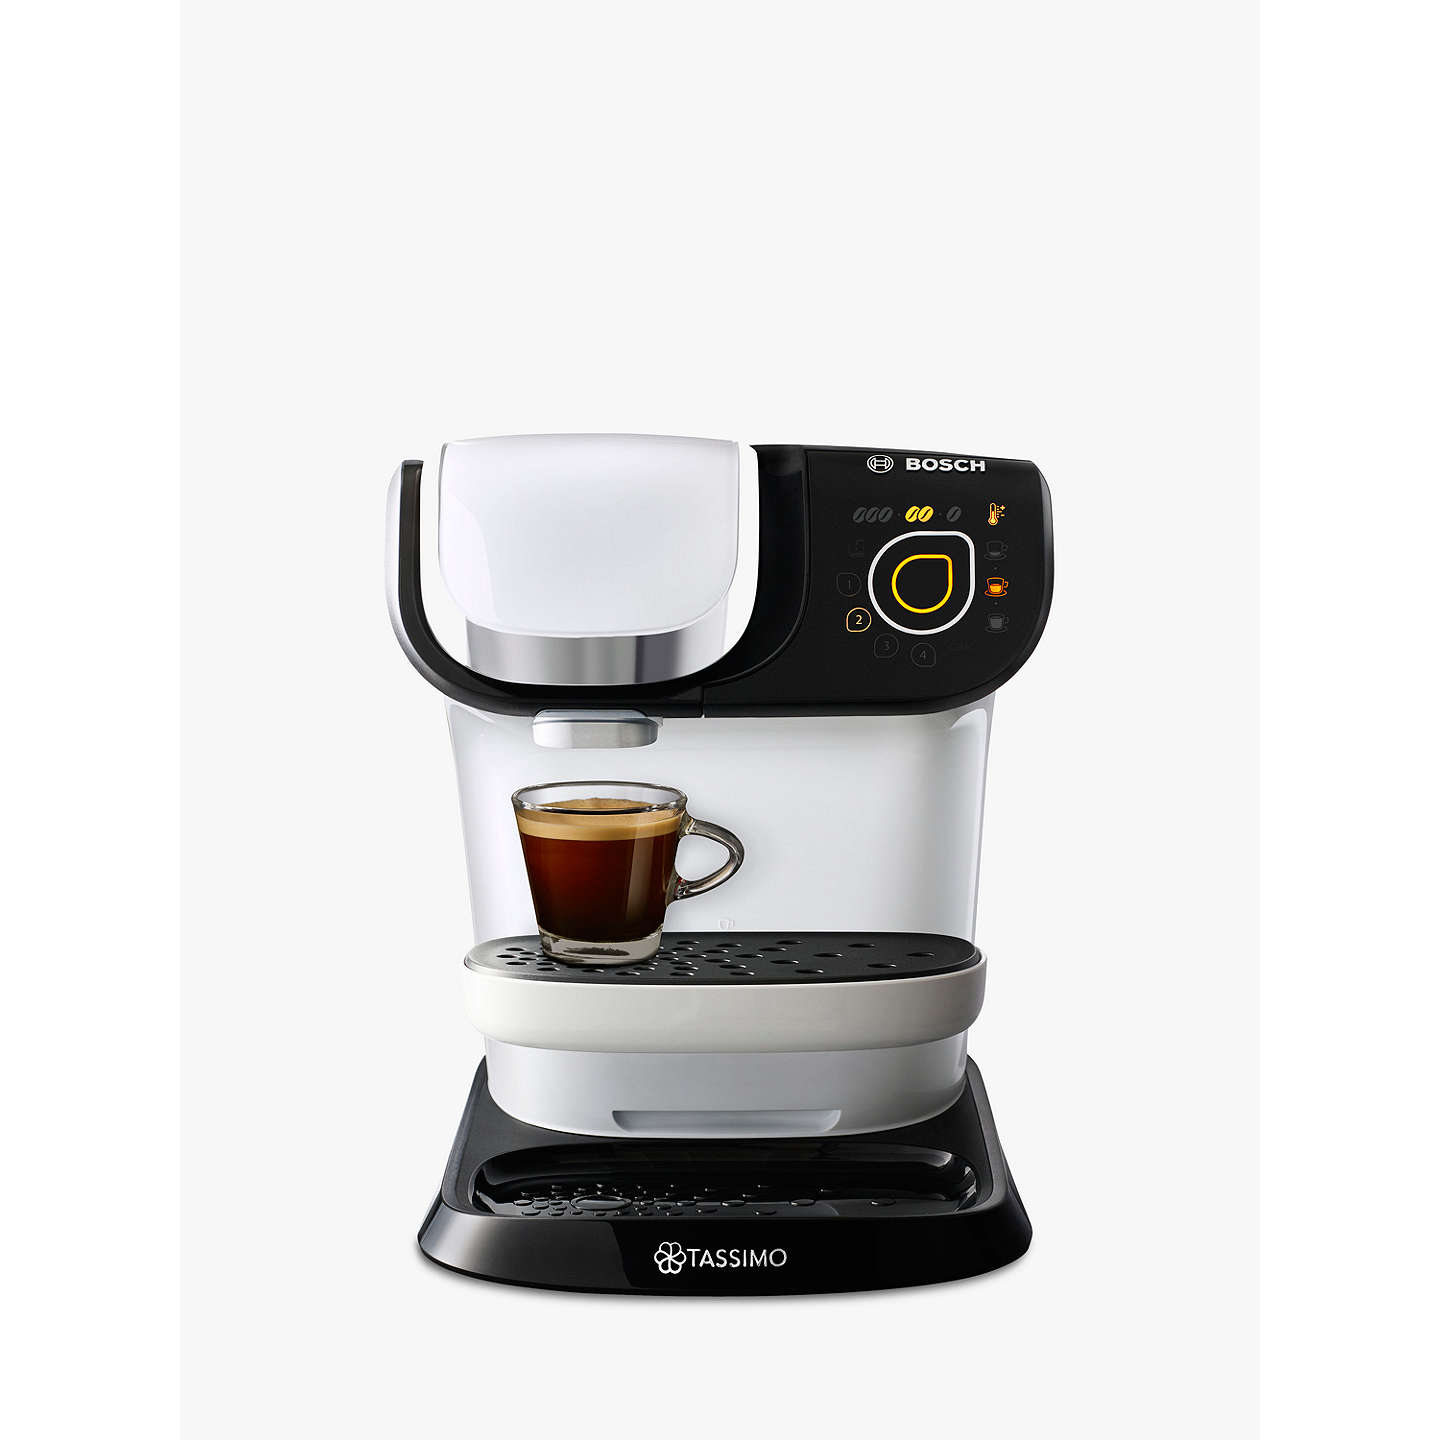 tassimo my way coffee machine by bosch at john lewis. Black Bedroom Furniture Sets. Home Design Ideas